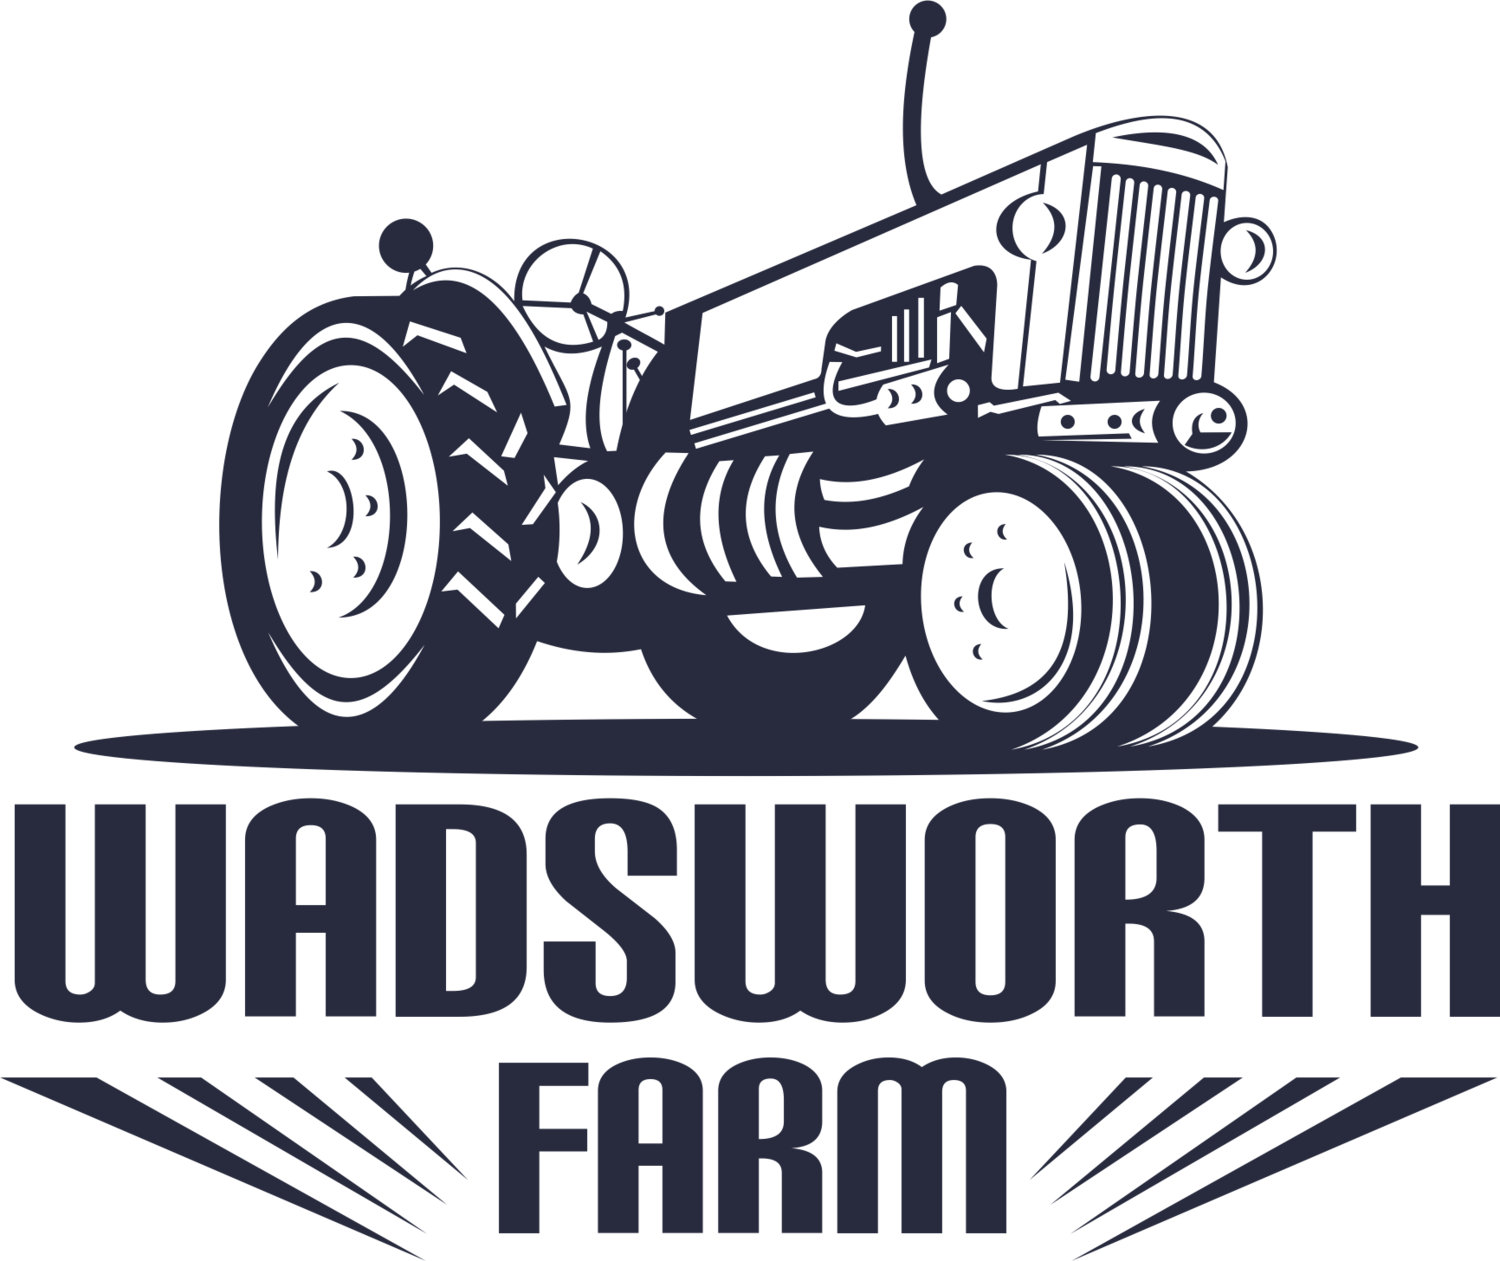 Wadsworth Farm